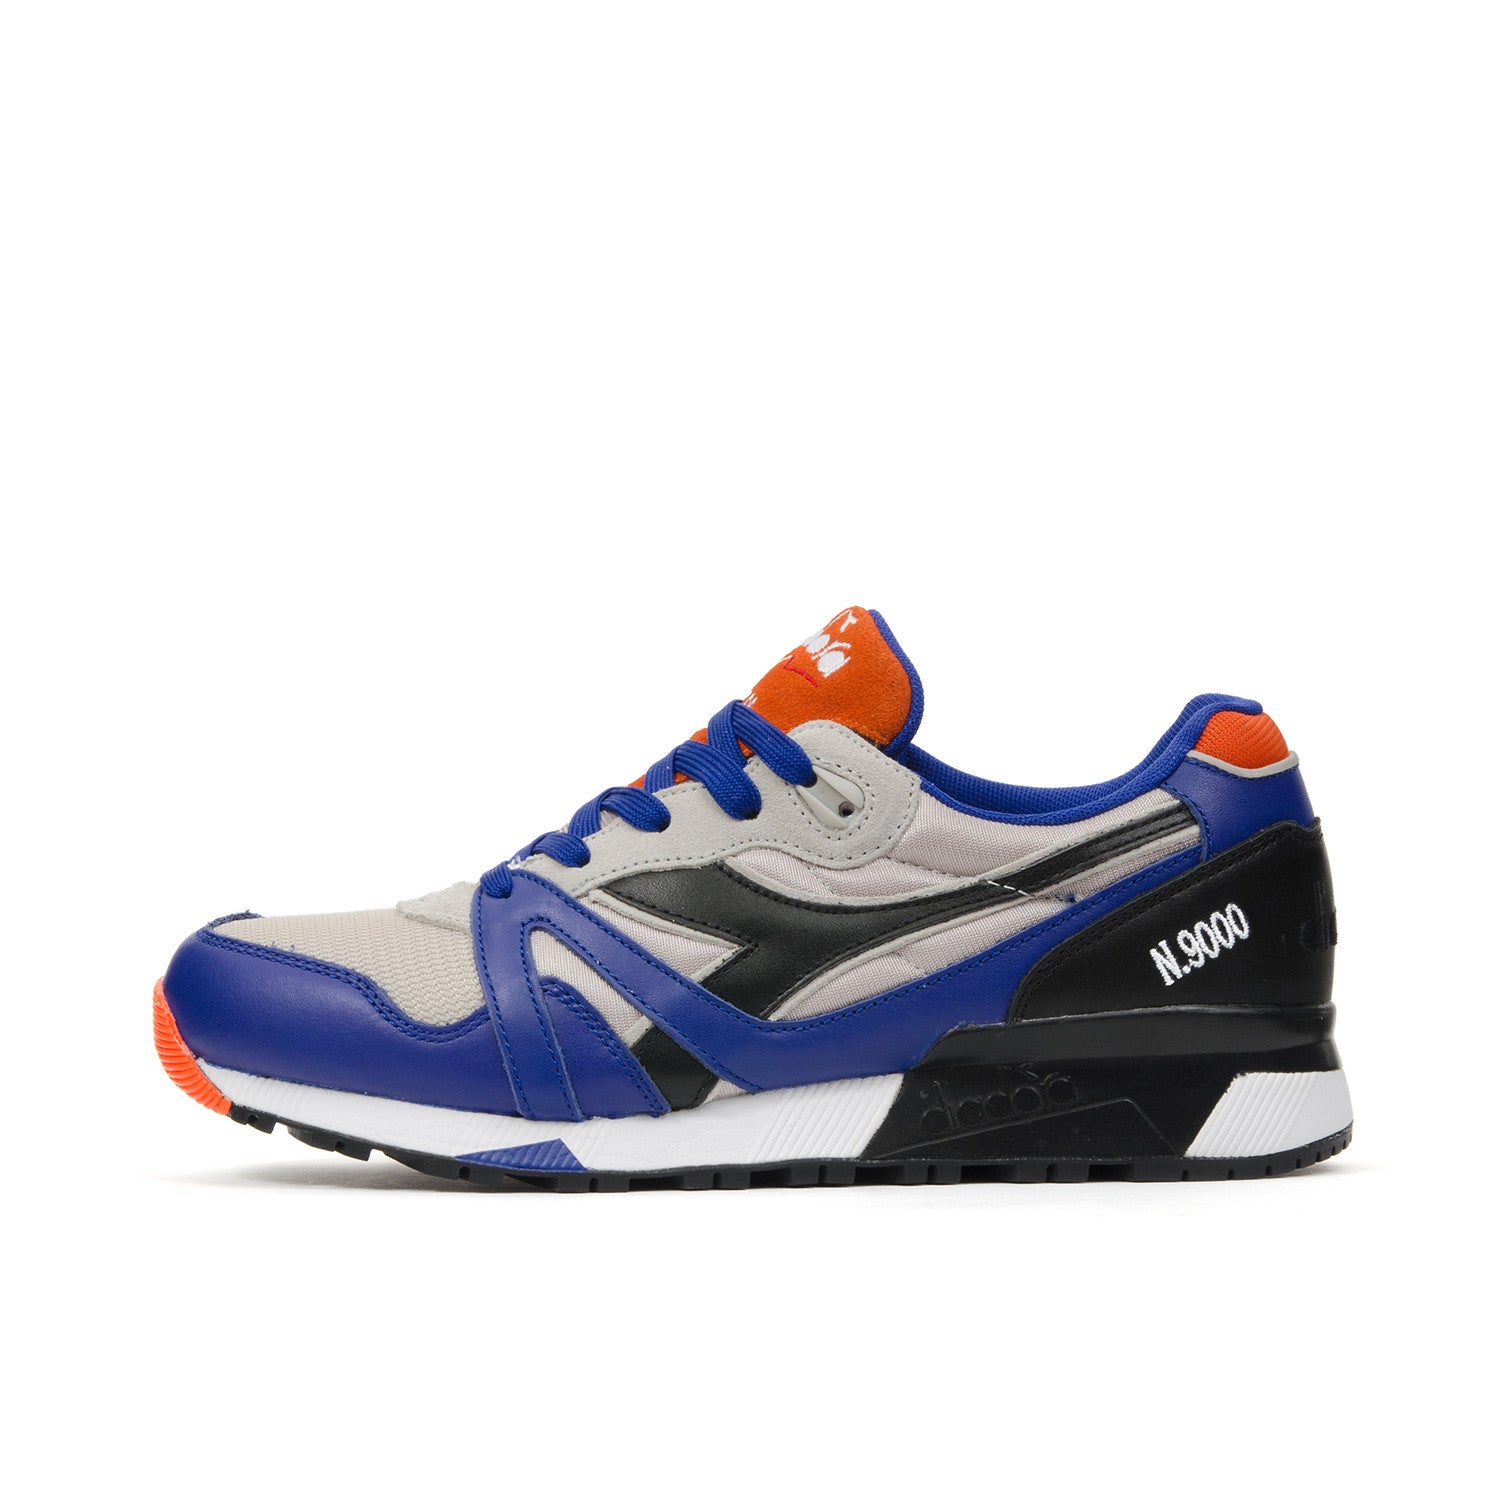 Diadora N9000 L-S Wind Grey/Imperial Blue - Concrete